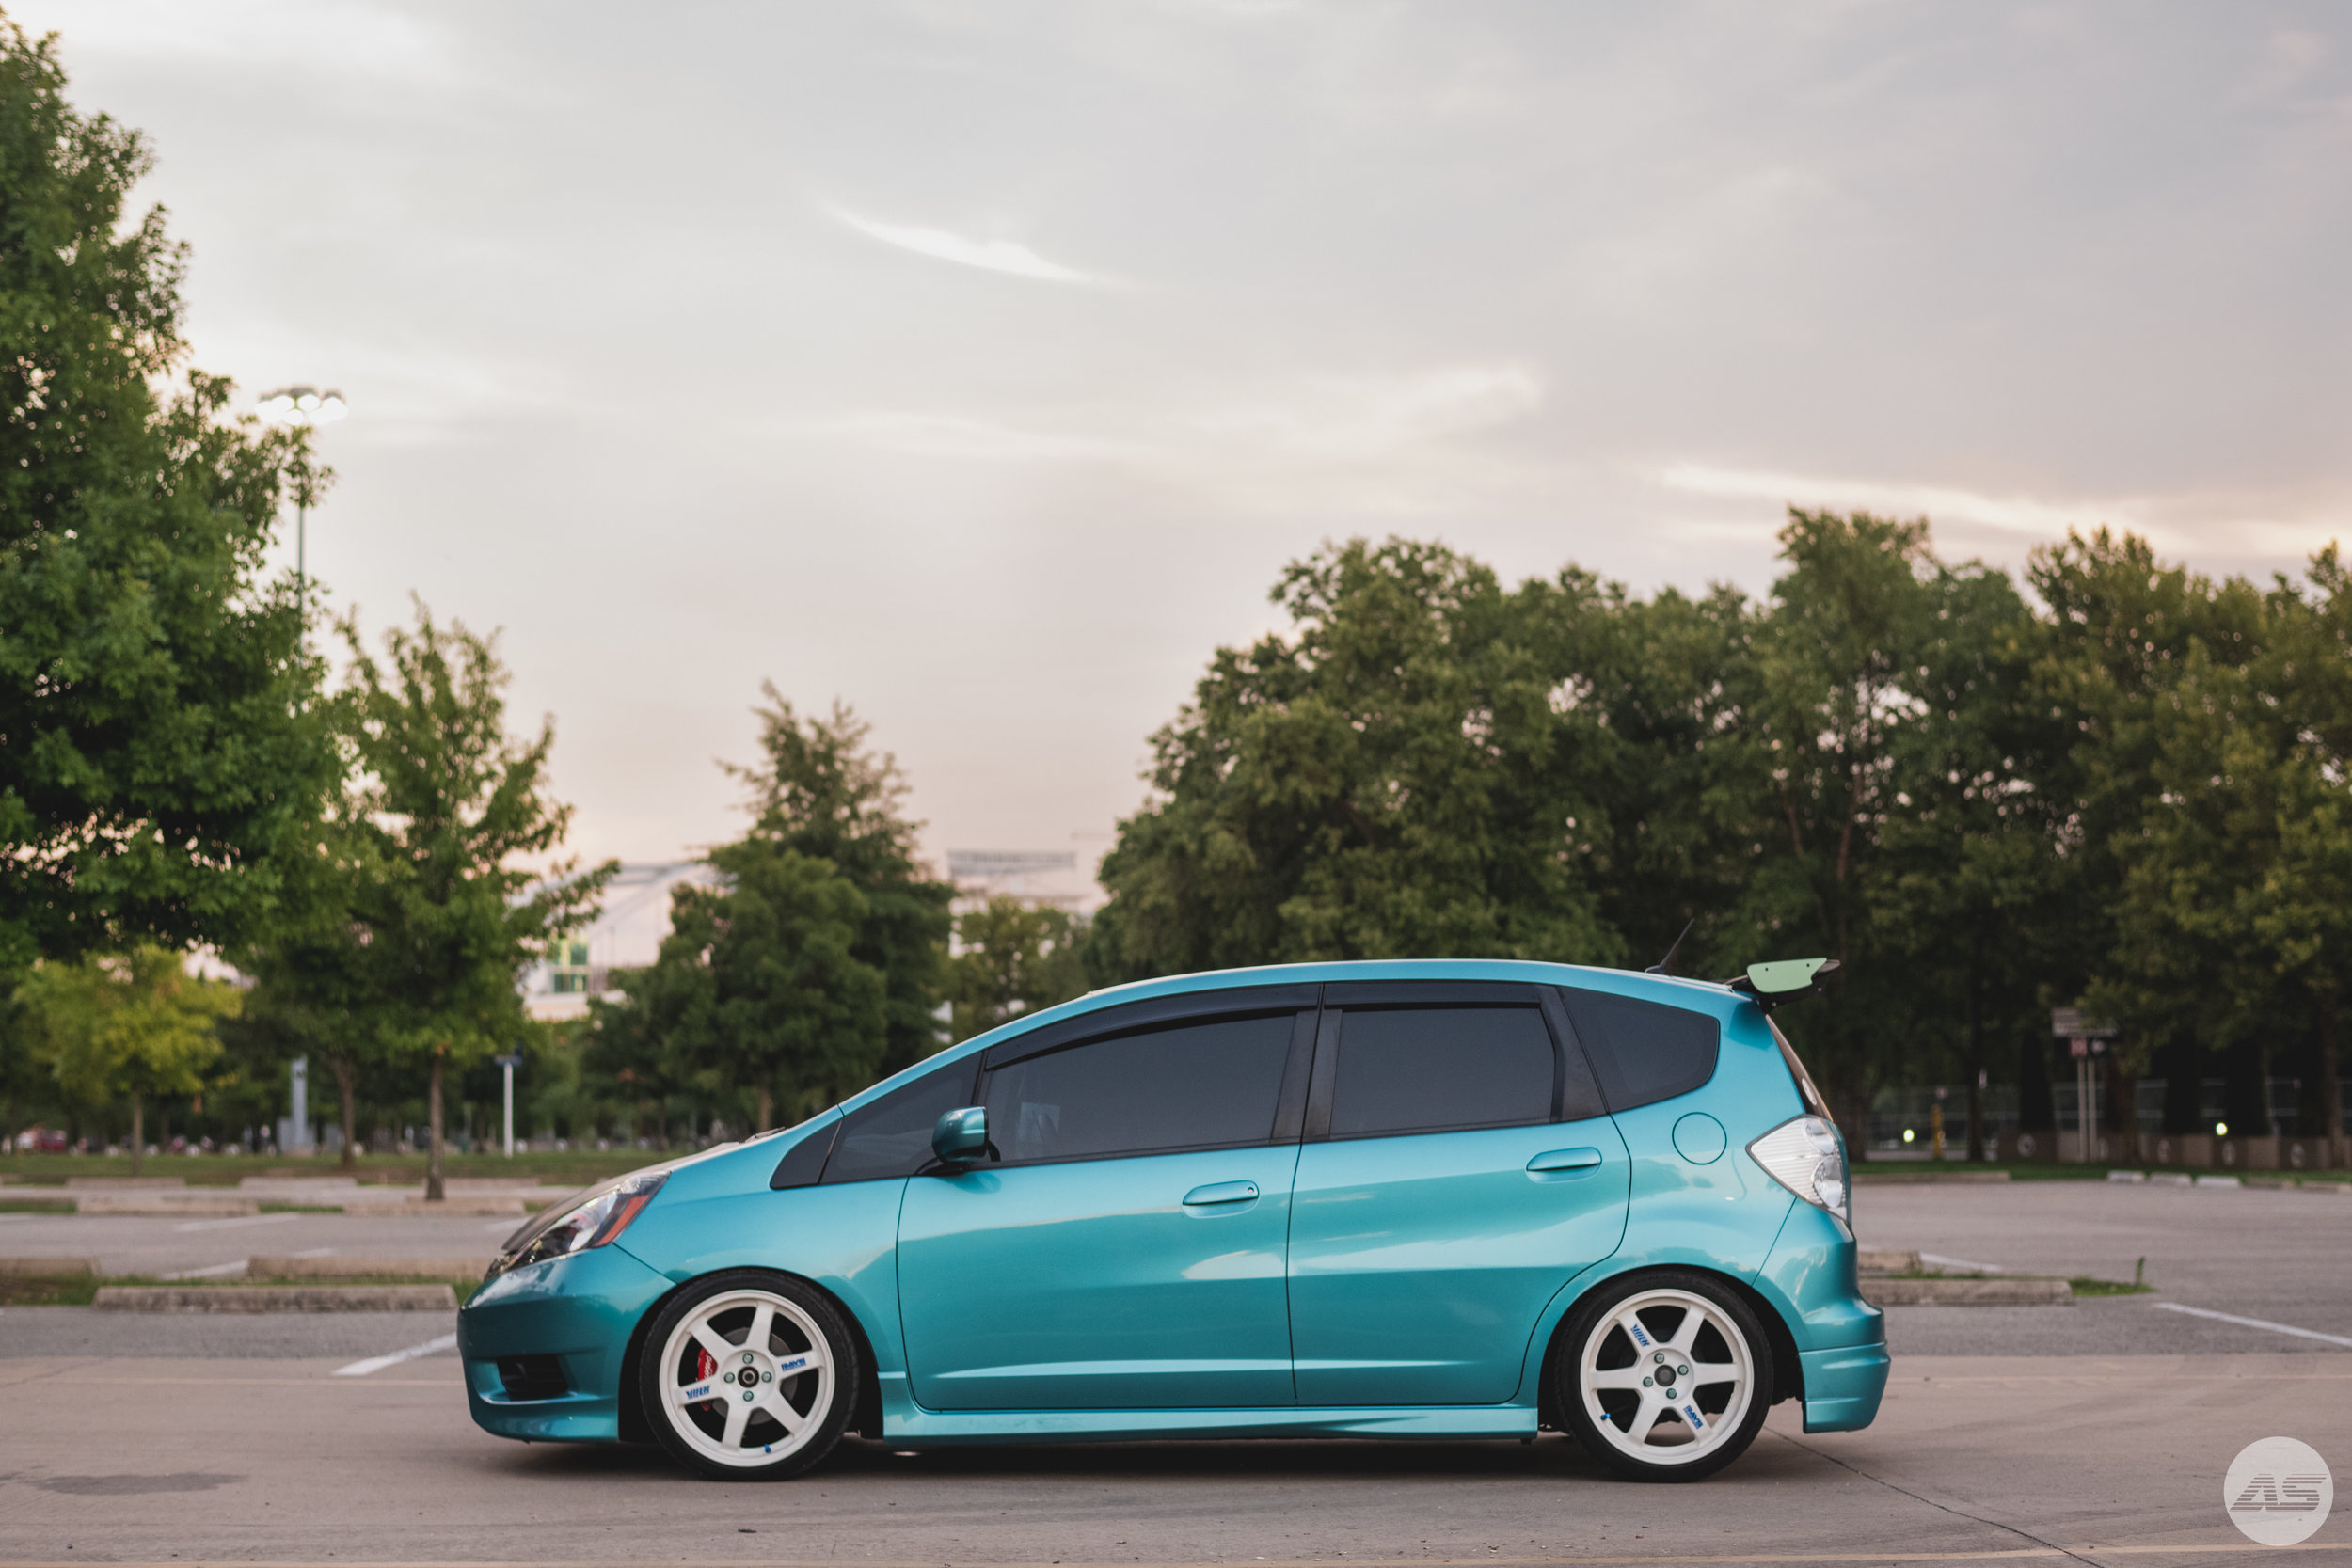 The Dream of the 90s - Ando Rajavong's 2012 Honda Fit SportNashville, TN | June 2019